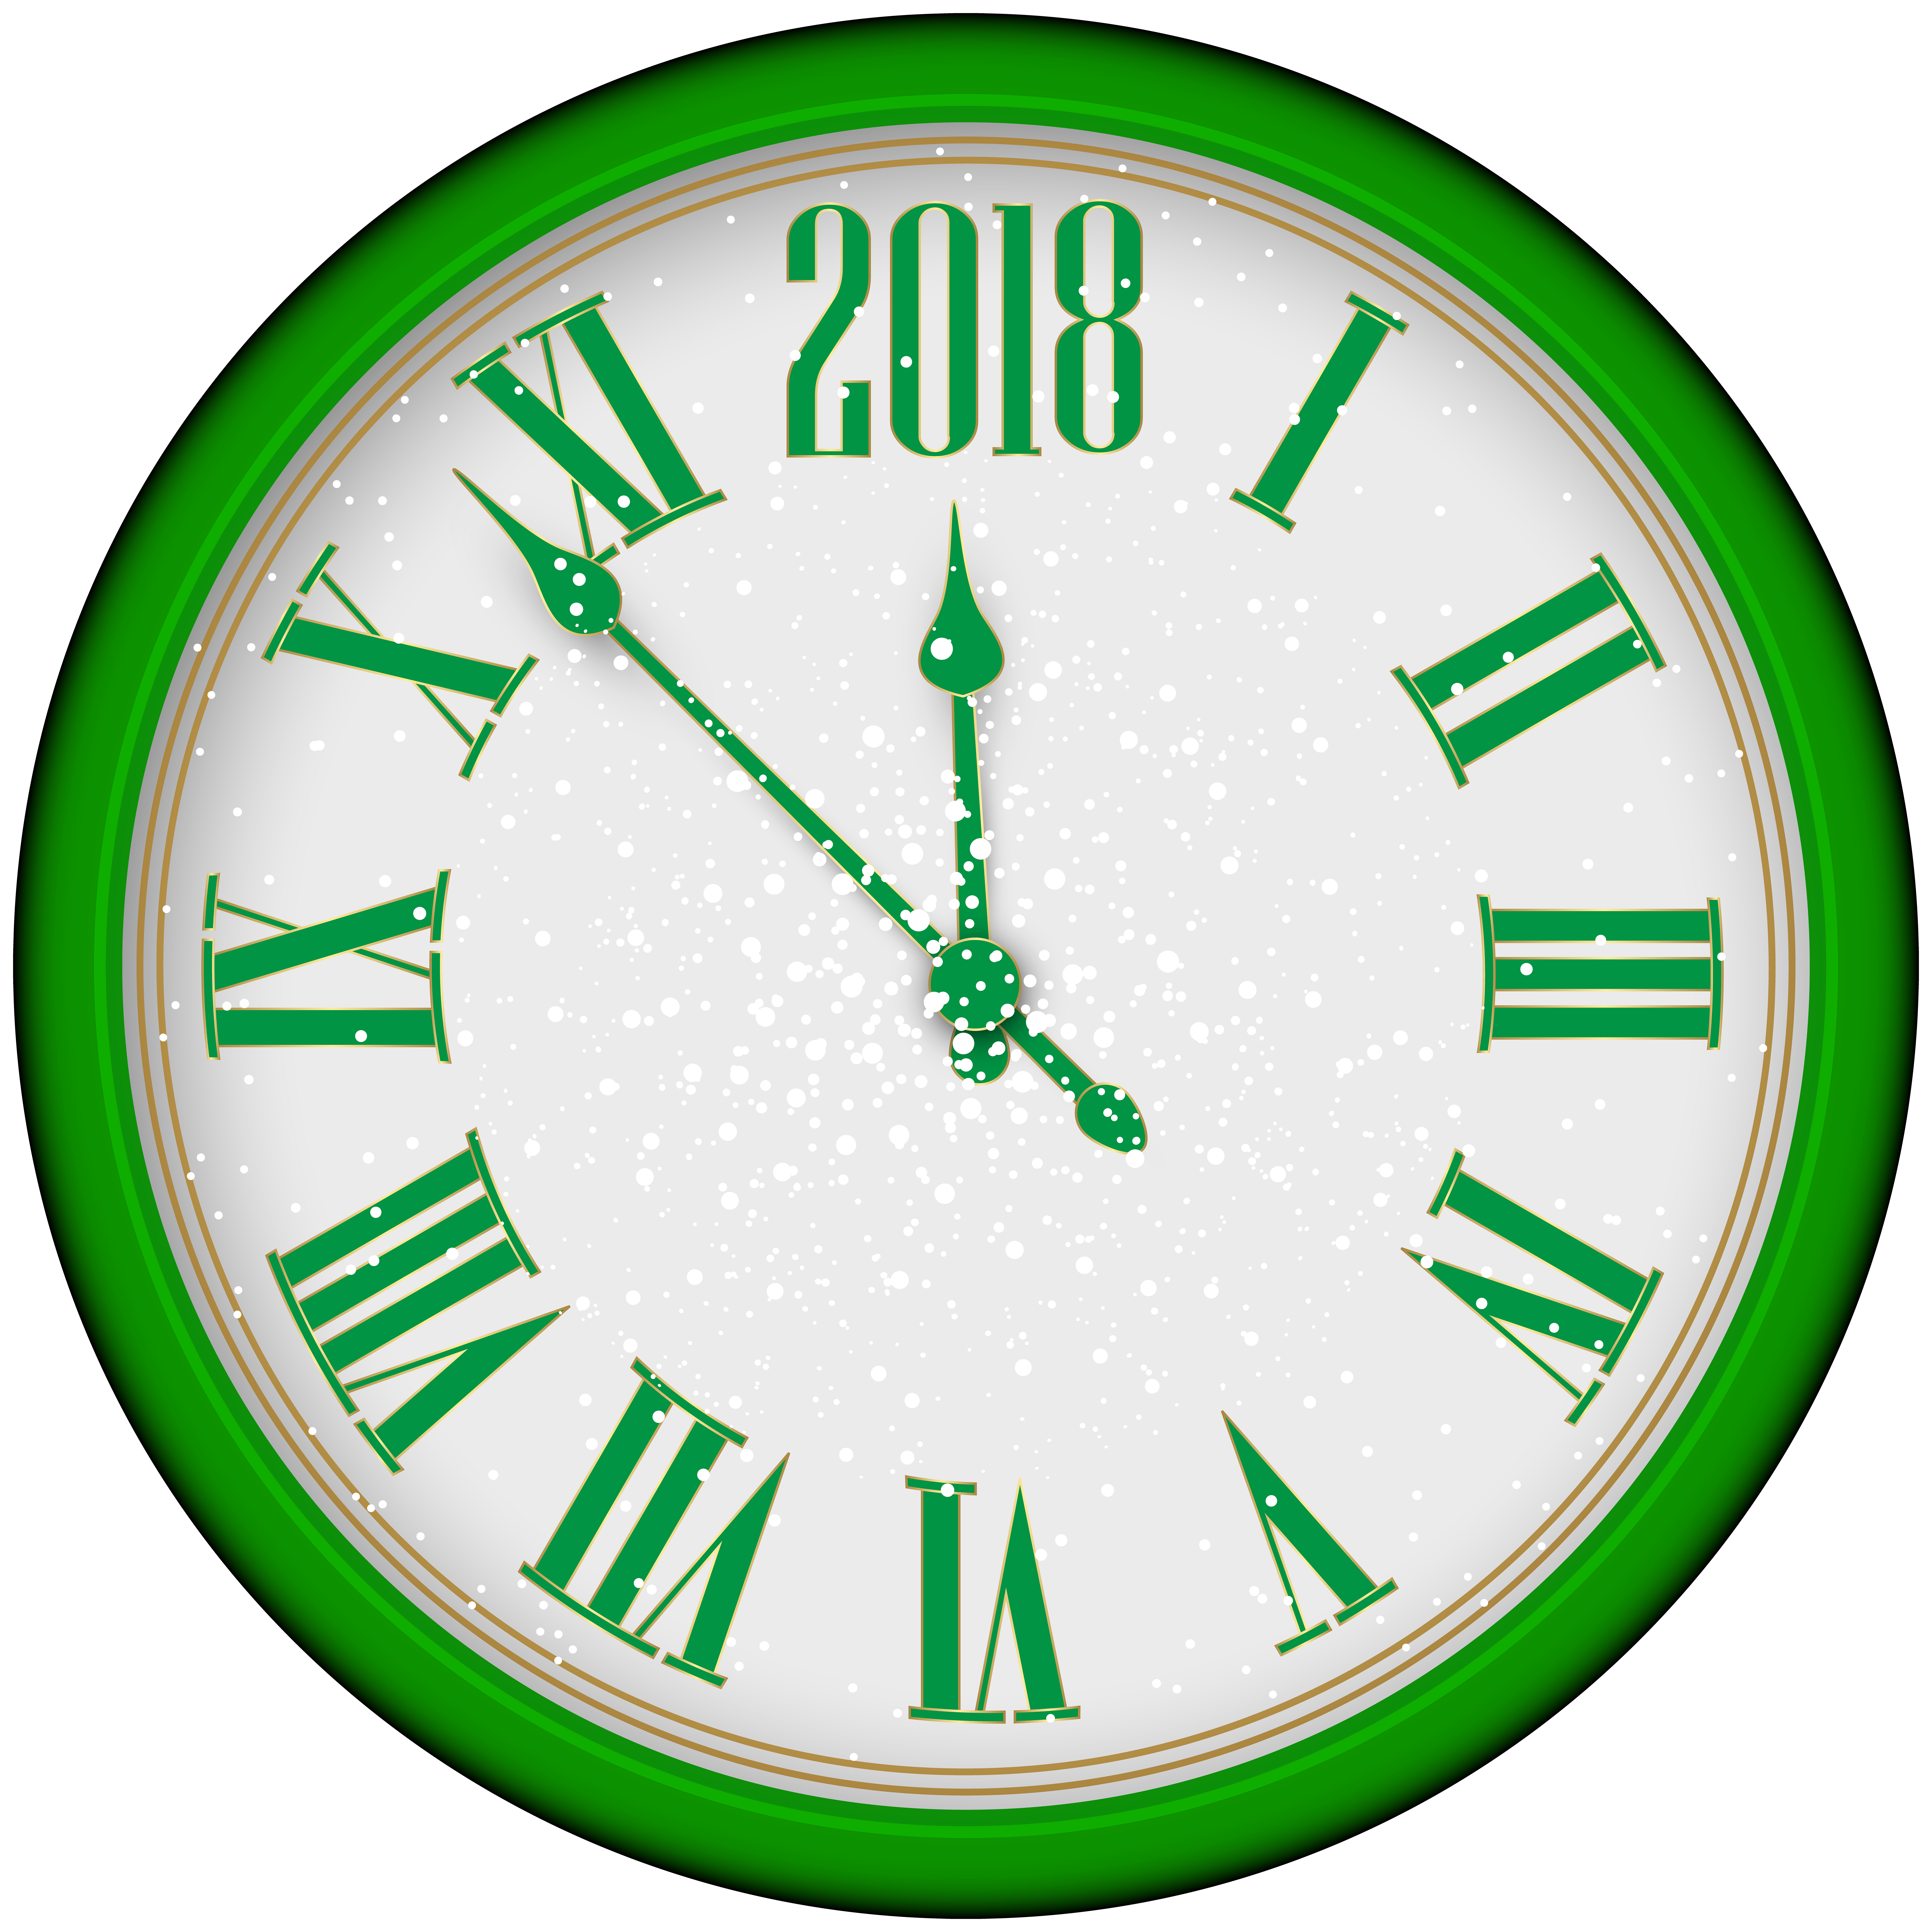 Year clip art green. Clock clipart new year's eve